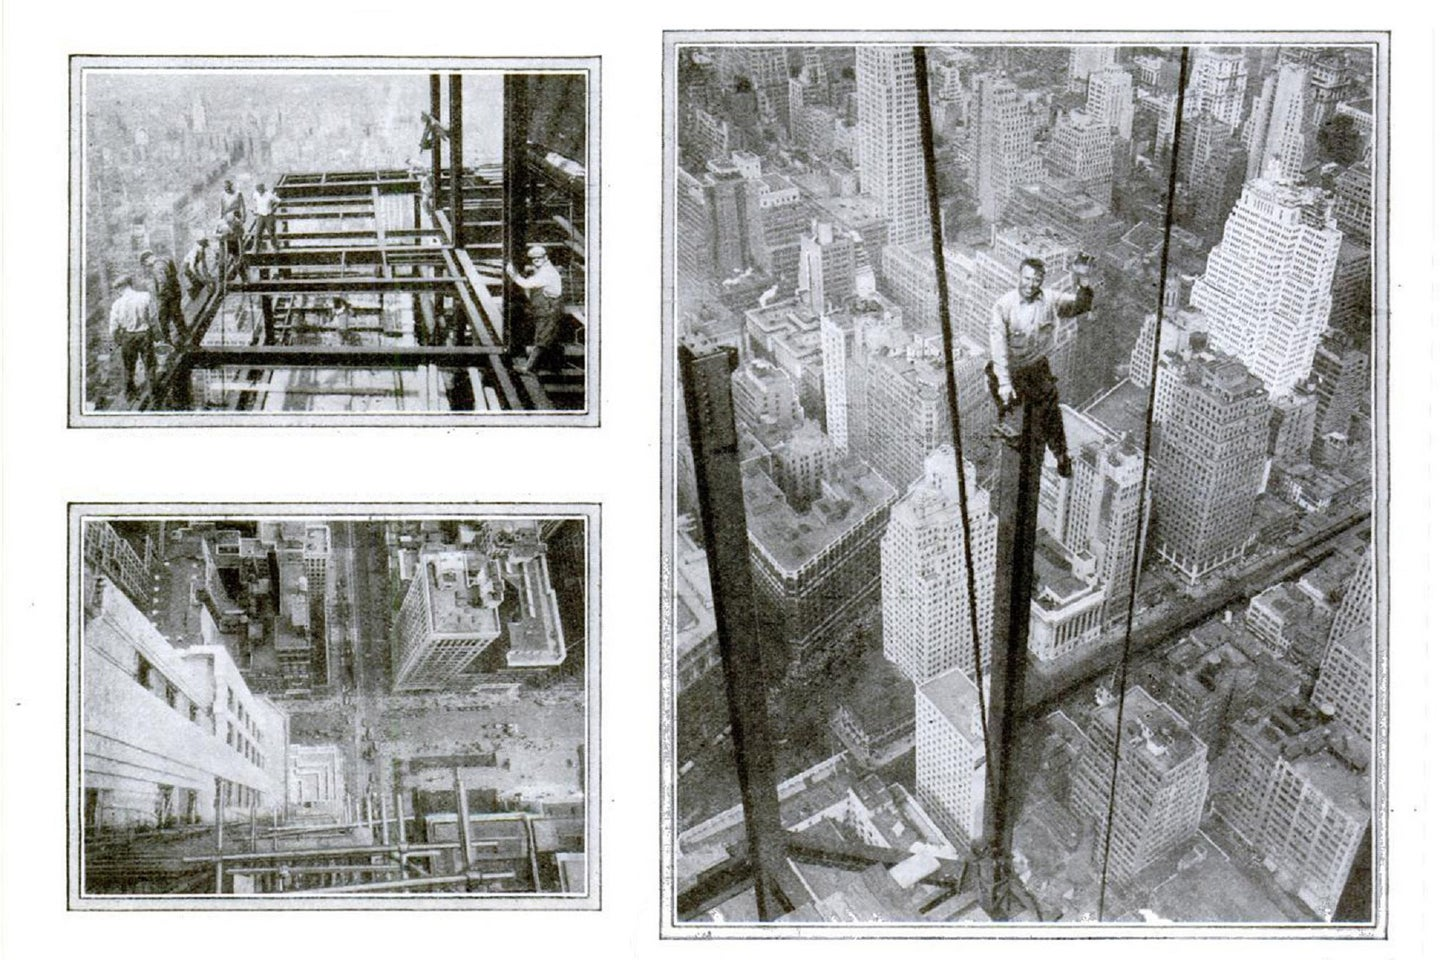 Black and white photos of workers at the Empire State Building site, who defied death by vaulting one-fifth of a mile up on ropes and girders